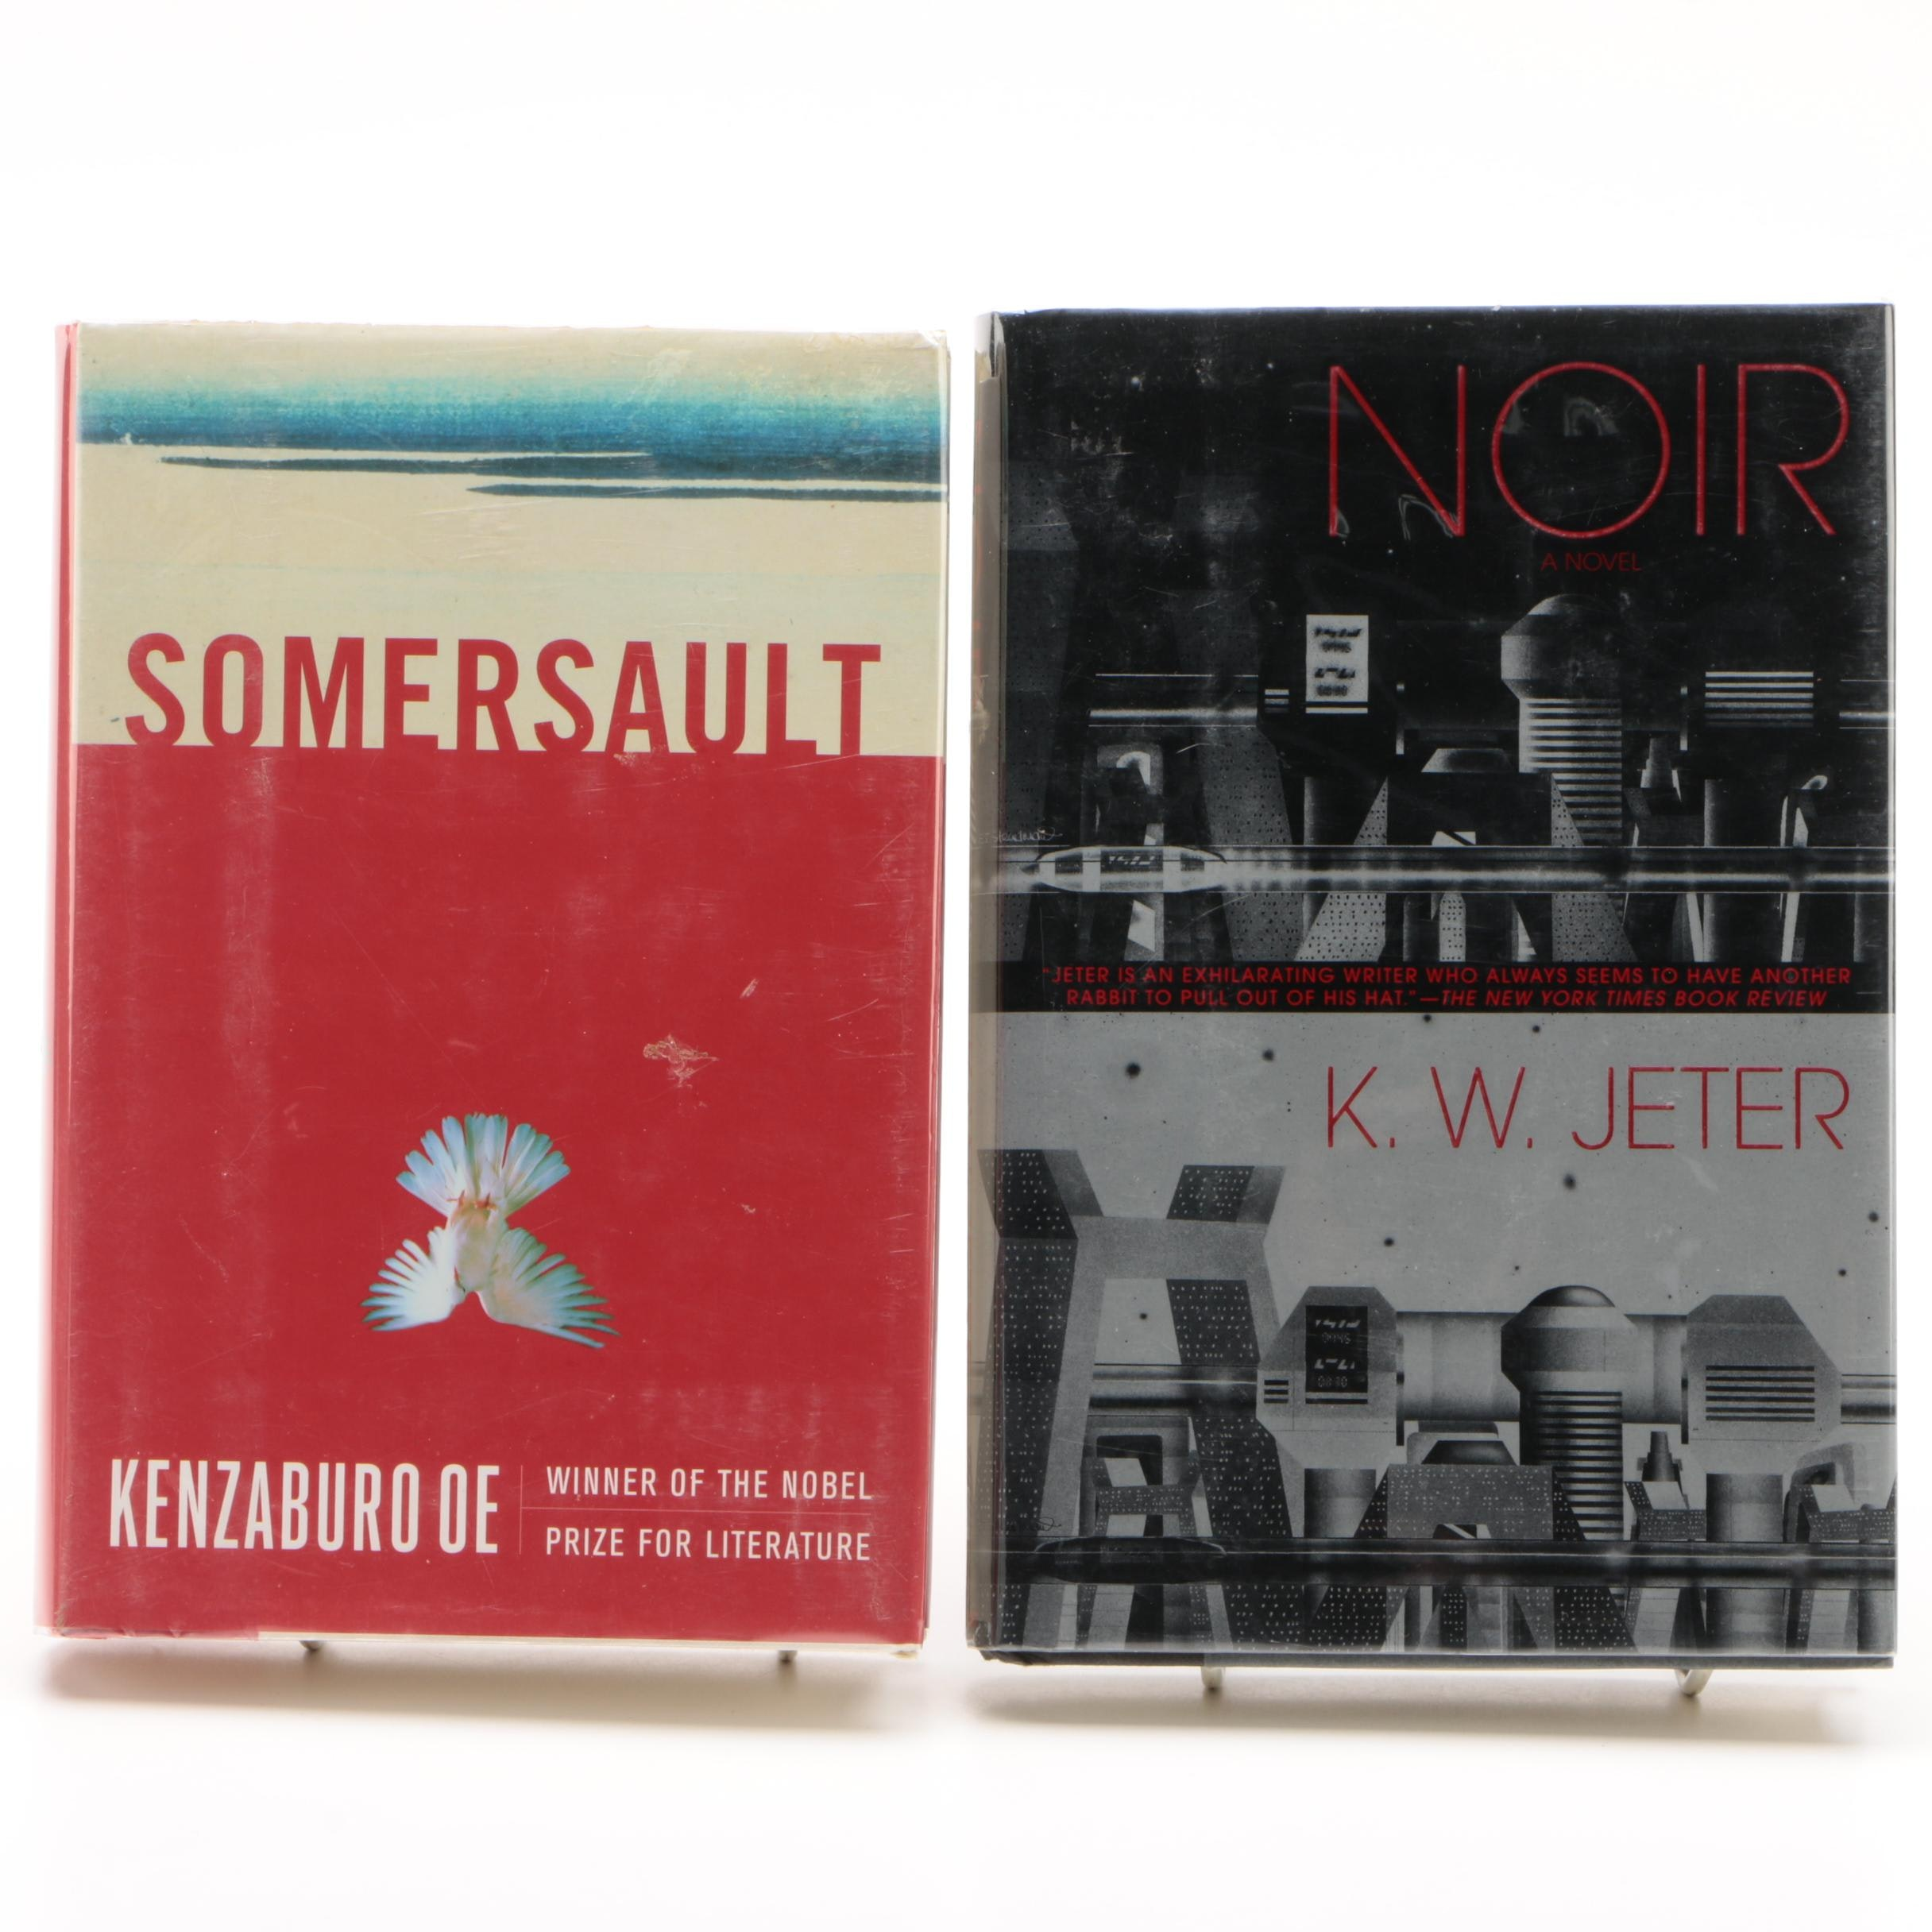 """Signed """"Noir"""" by K.W. Jeter with """"Somersault"""" by Kenzaburo Oe"""